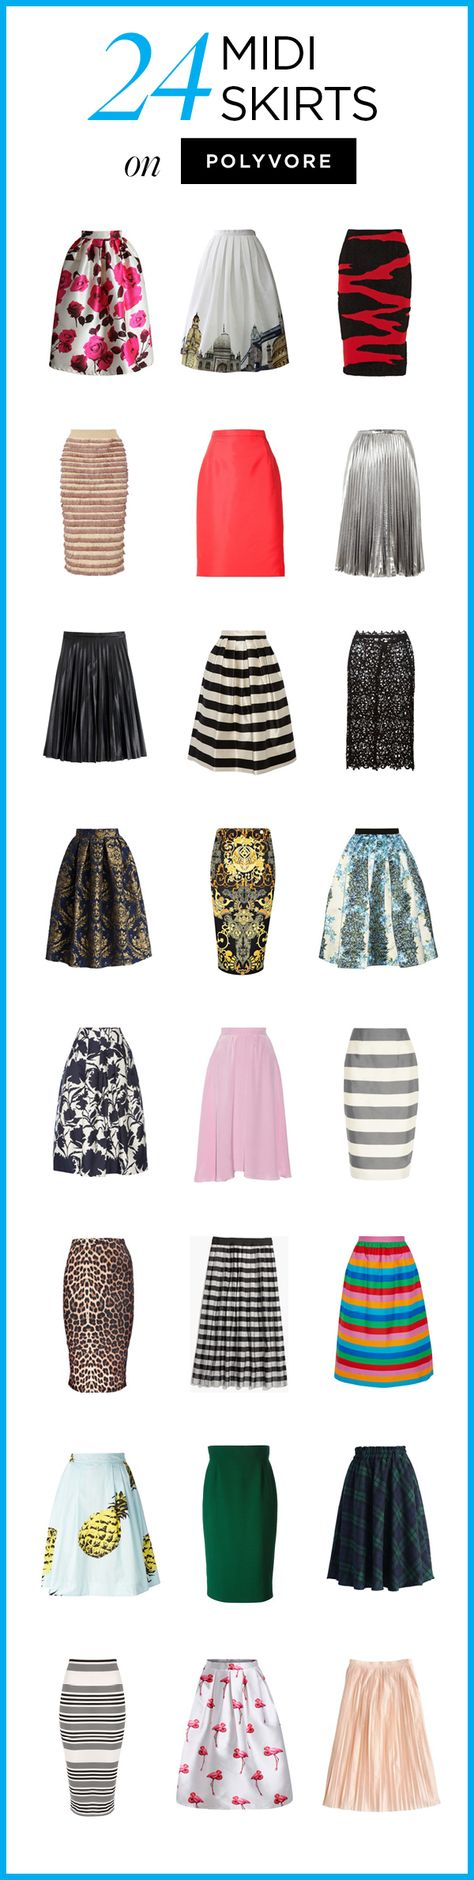 24 Midi Skirts on Polyvore! Shop all cute, mid-length skirt styles to find a look you love: http://polyv.re/MidiSkirts